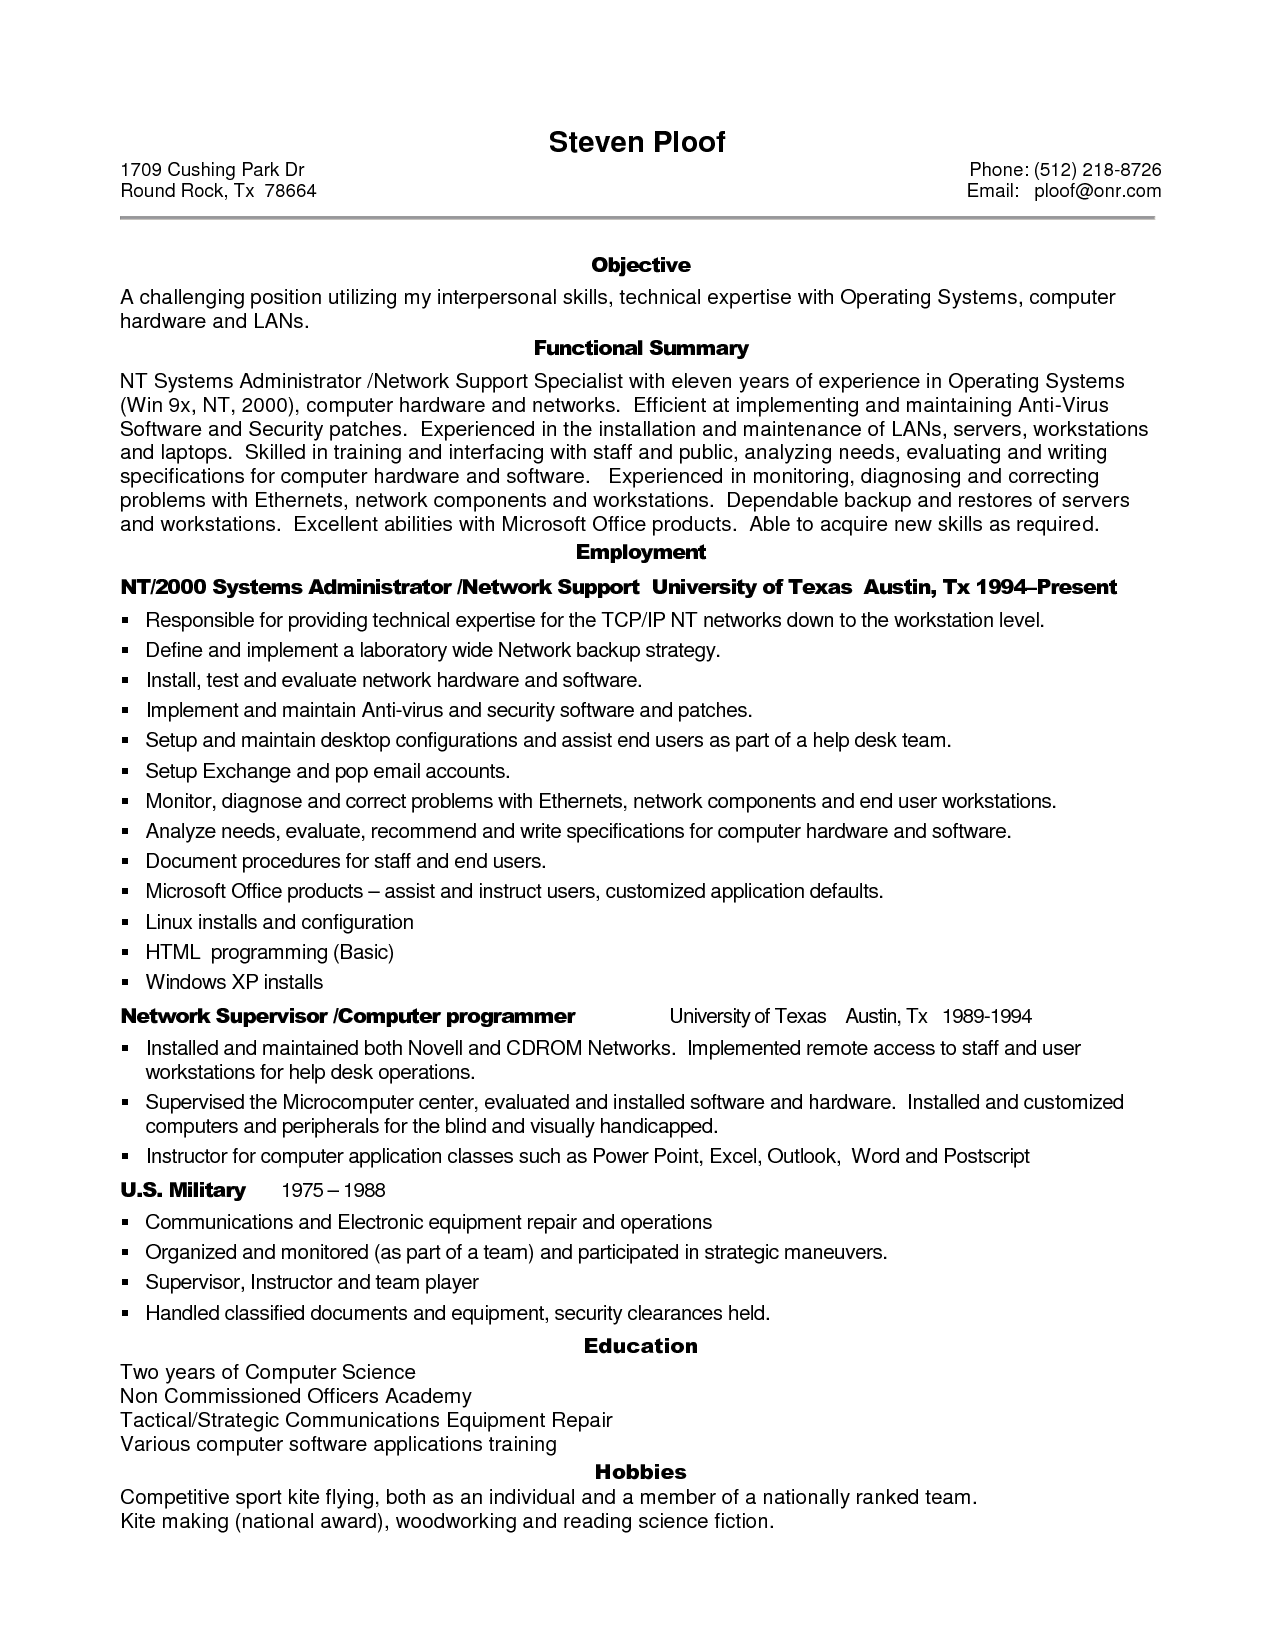 Sample Resume For Experienced It Professional Sample Resume For Experienced  It Professional, Resume Tips For Experienced Professionals, Best Resume  Format ...